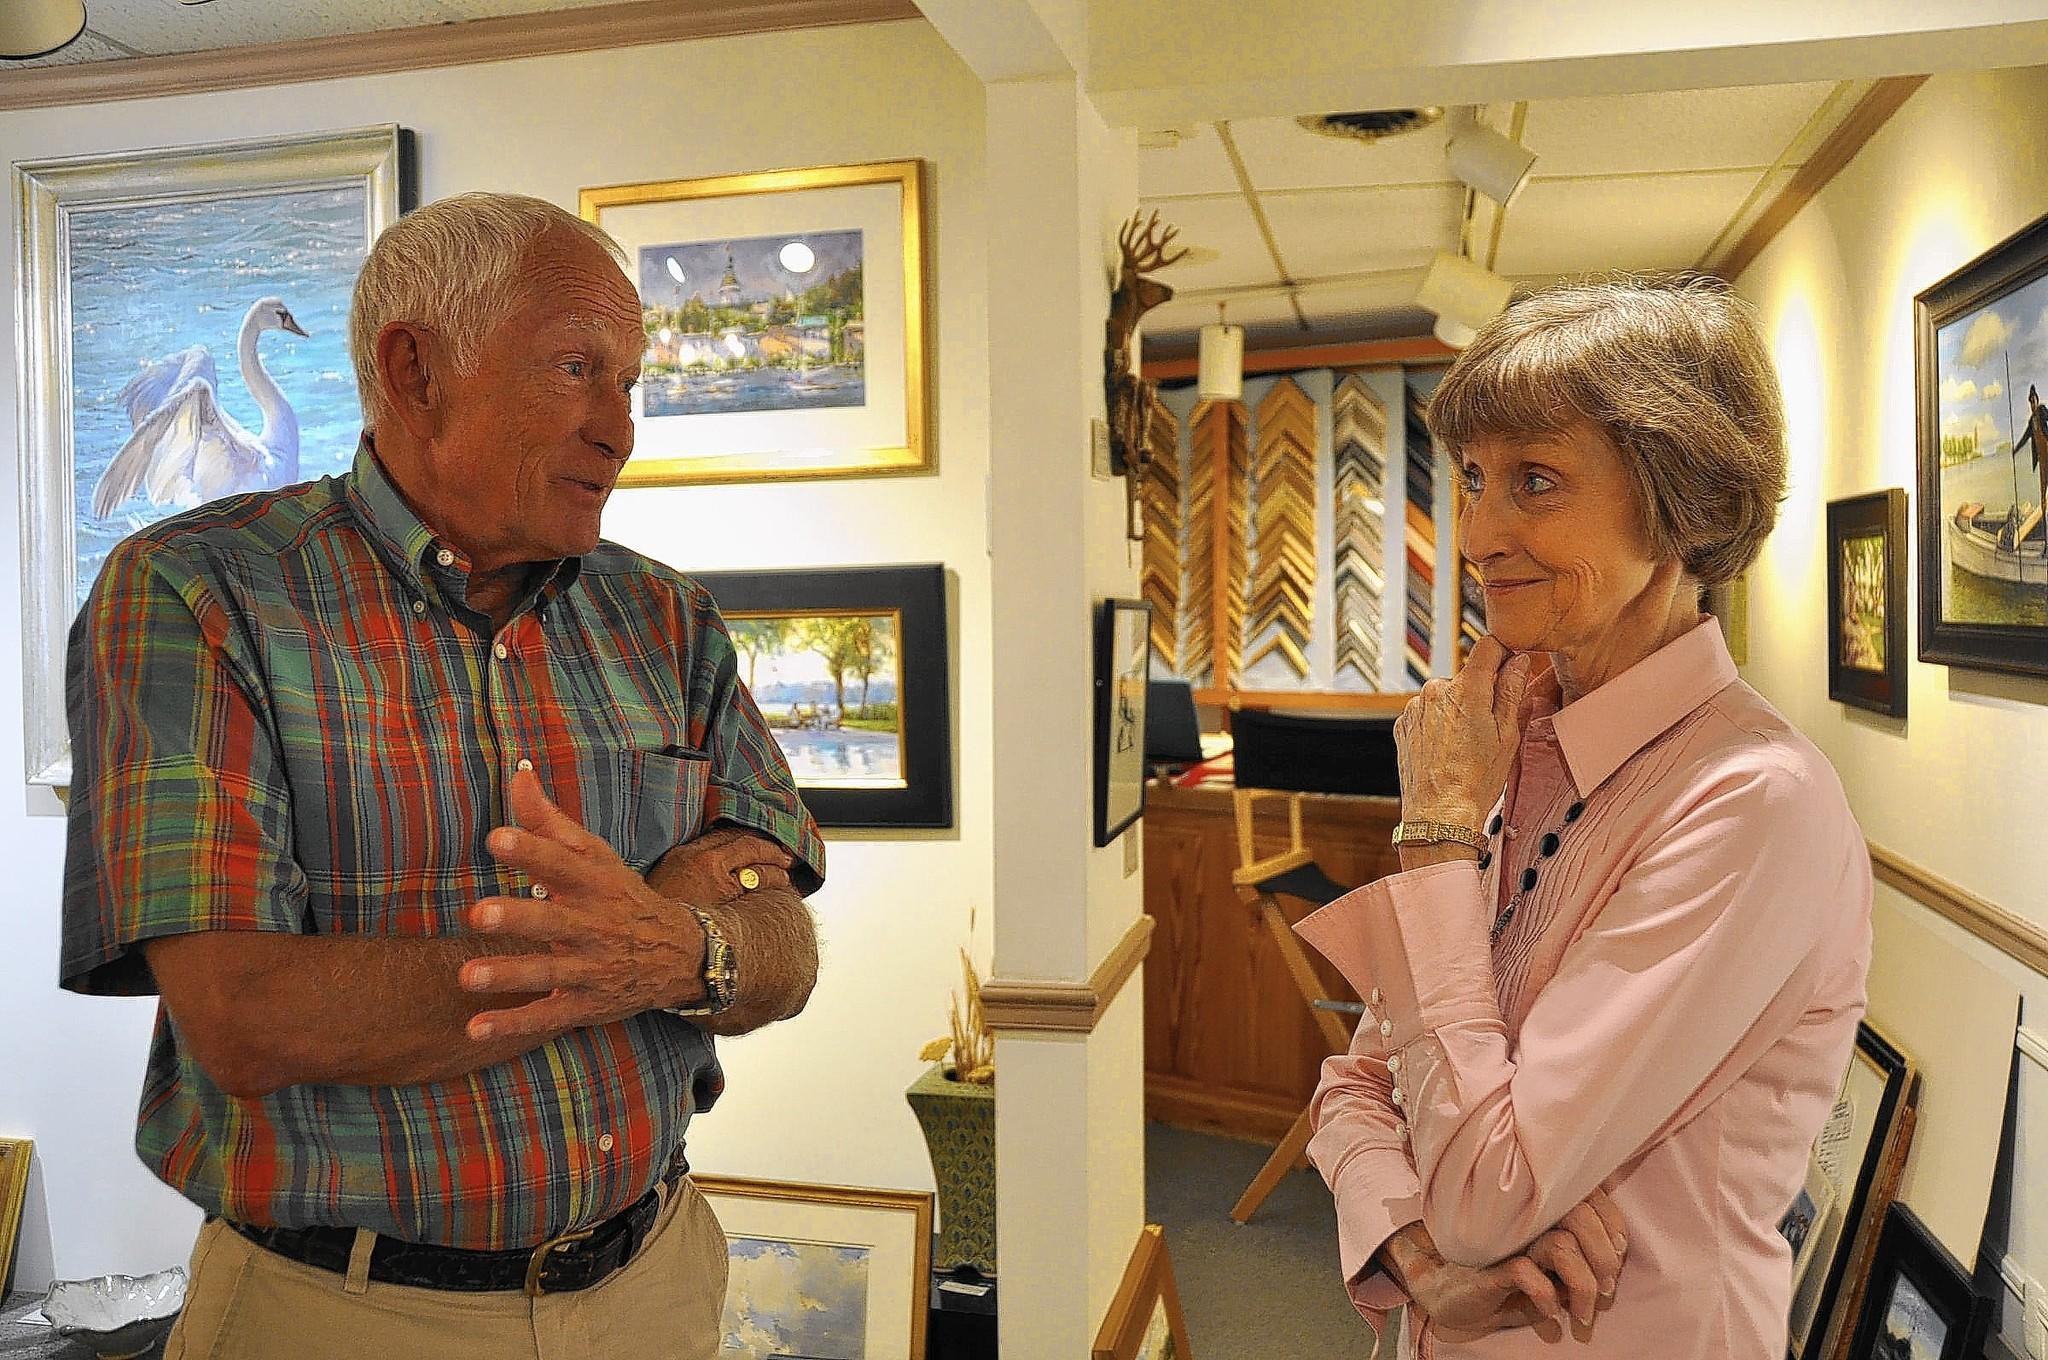 State Sen. John C. Astle stops in to visit Cynthia McBride at McBride Gallery on Main Street in Annapolis on Thursday. Astle is a Democrat, but he said he has taken some votes that appeal to business owners who tend to be more conservative or Republican.